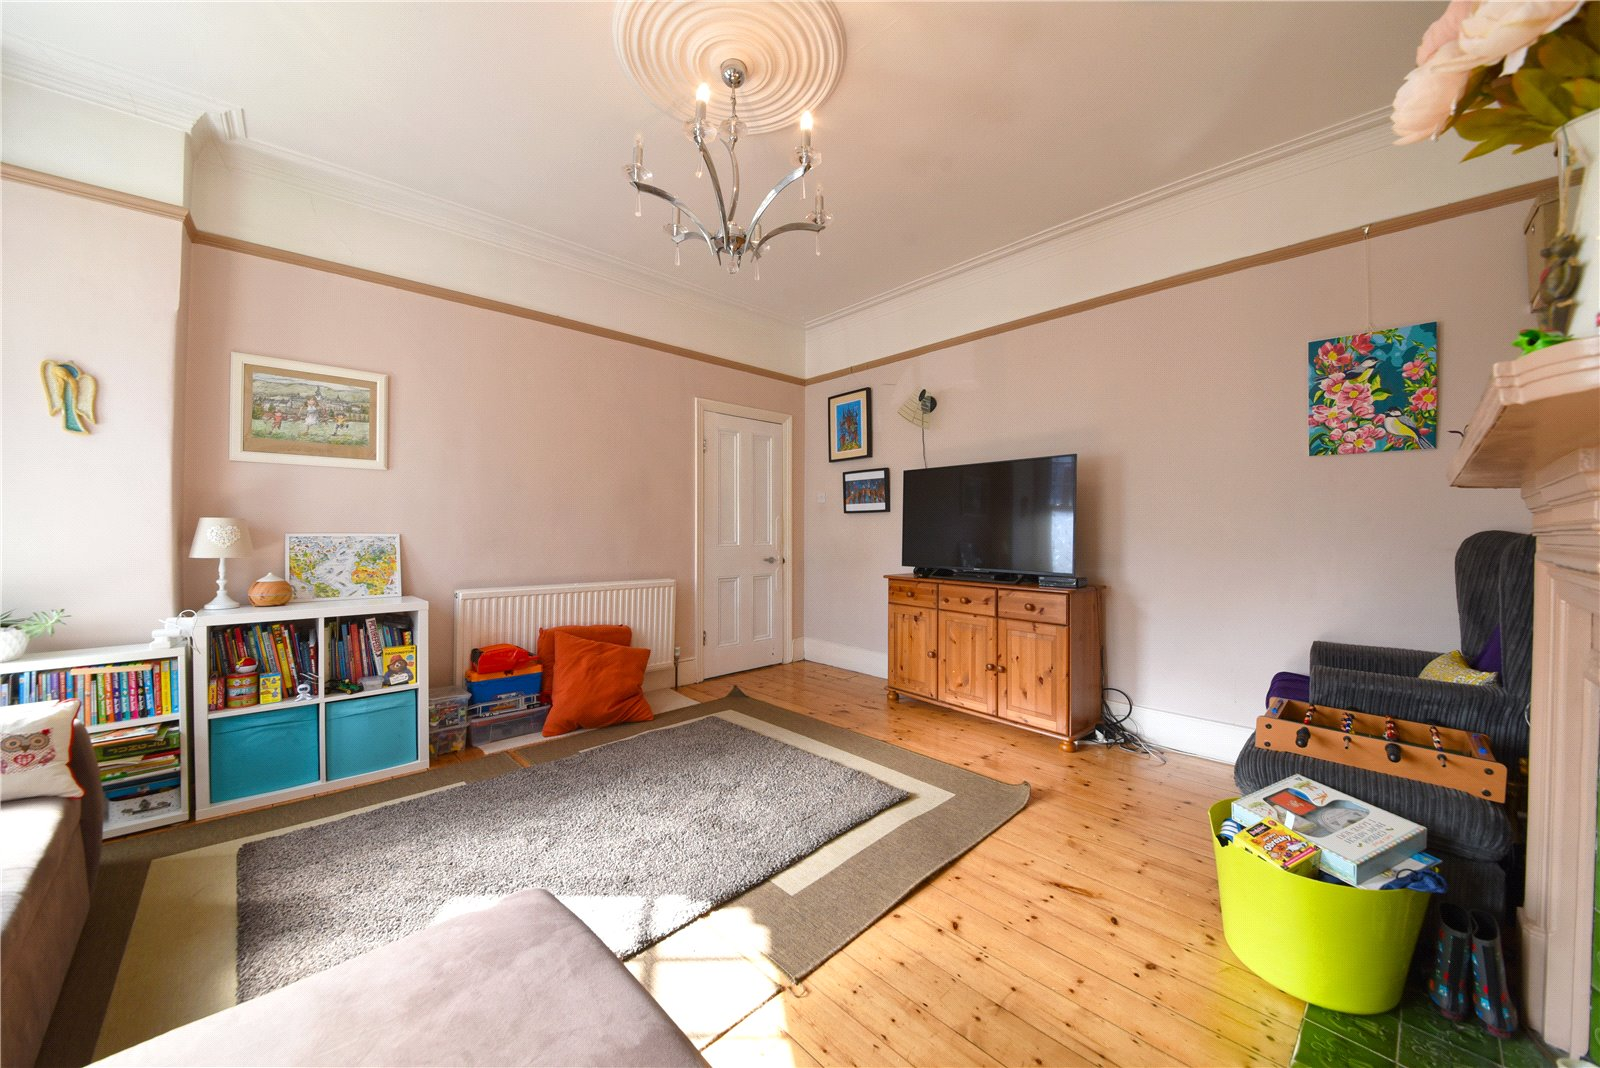 2 bed apartment for sale in East Finchley, N2 0SX 8